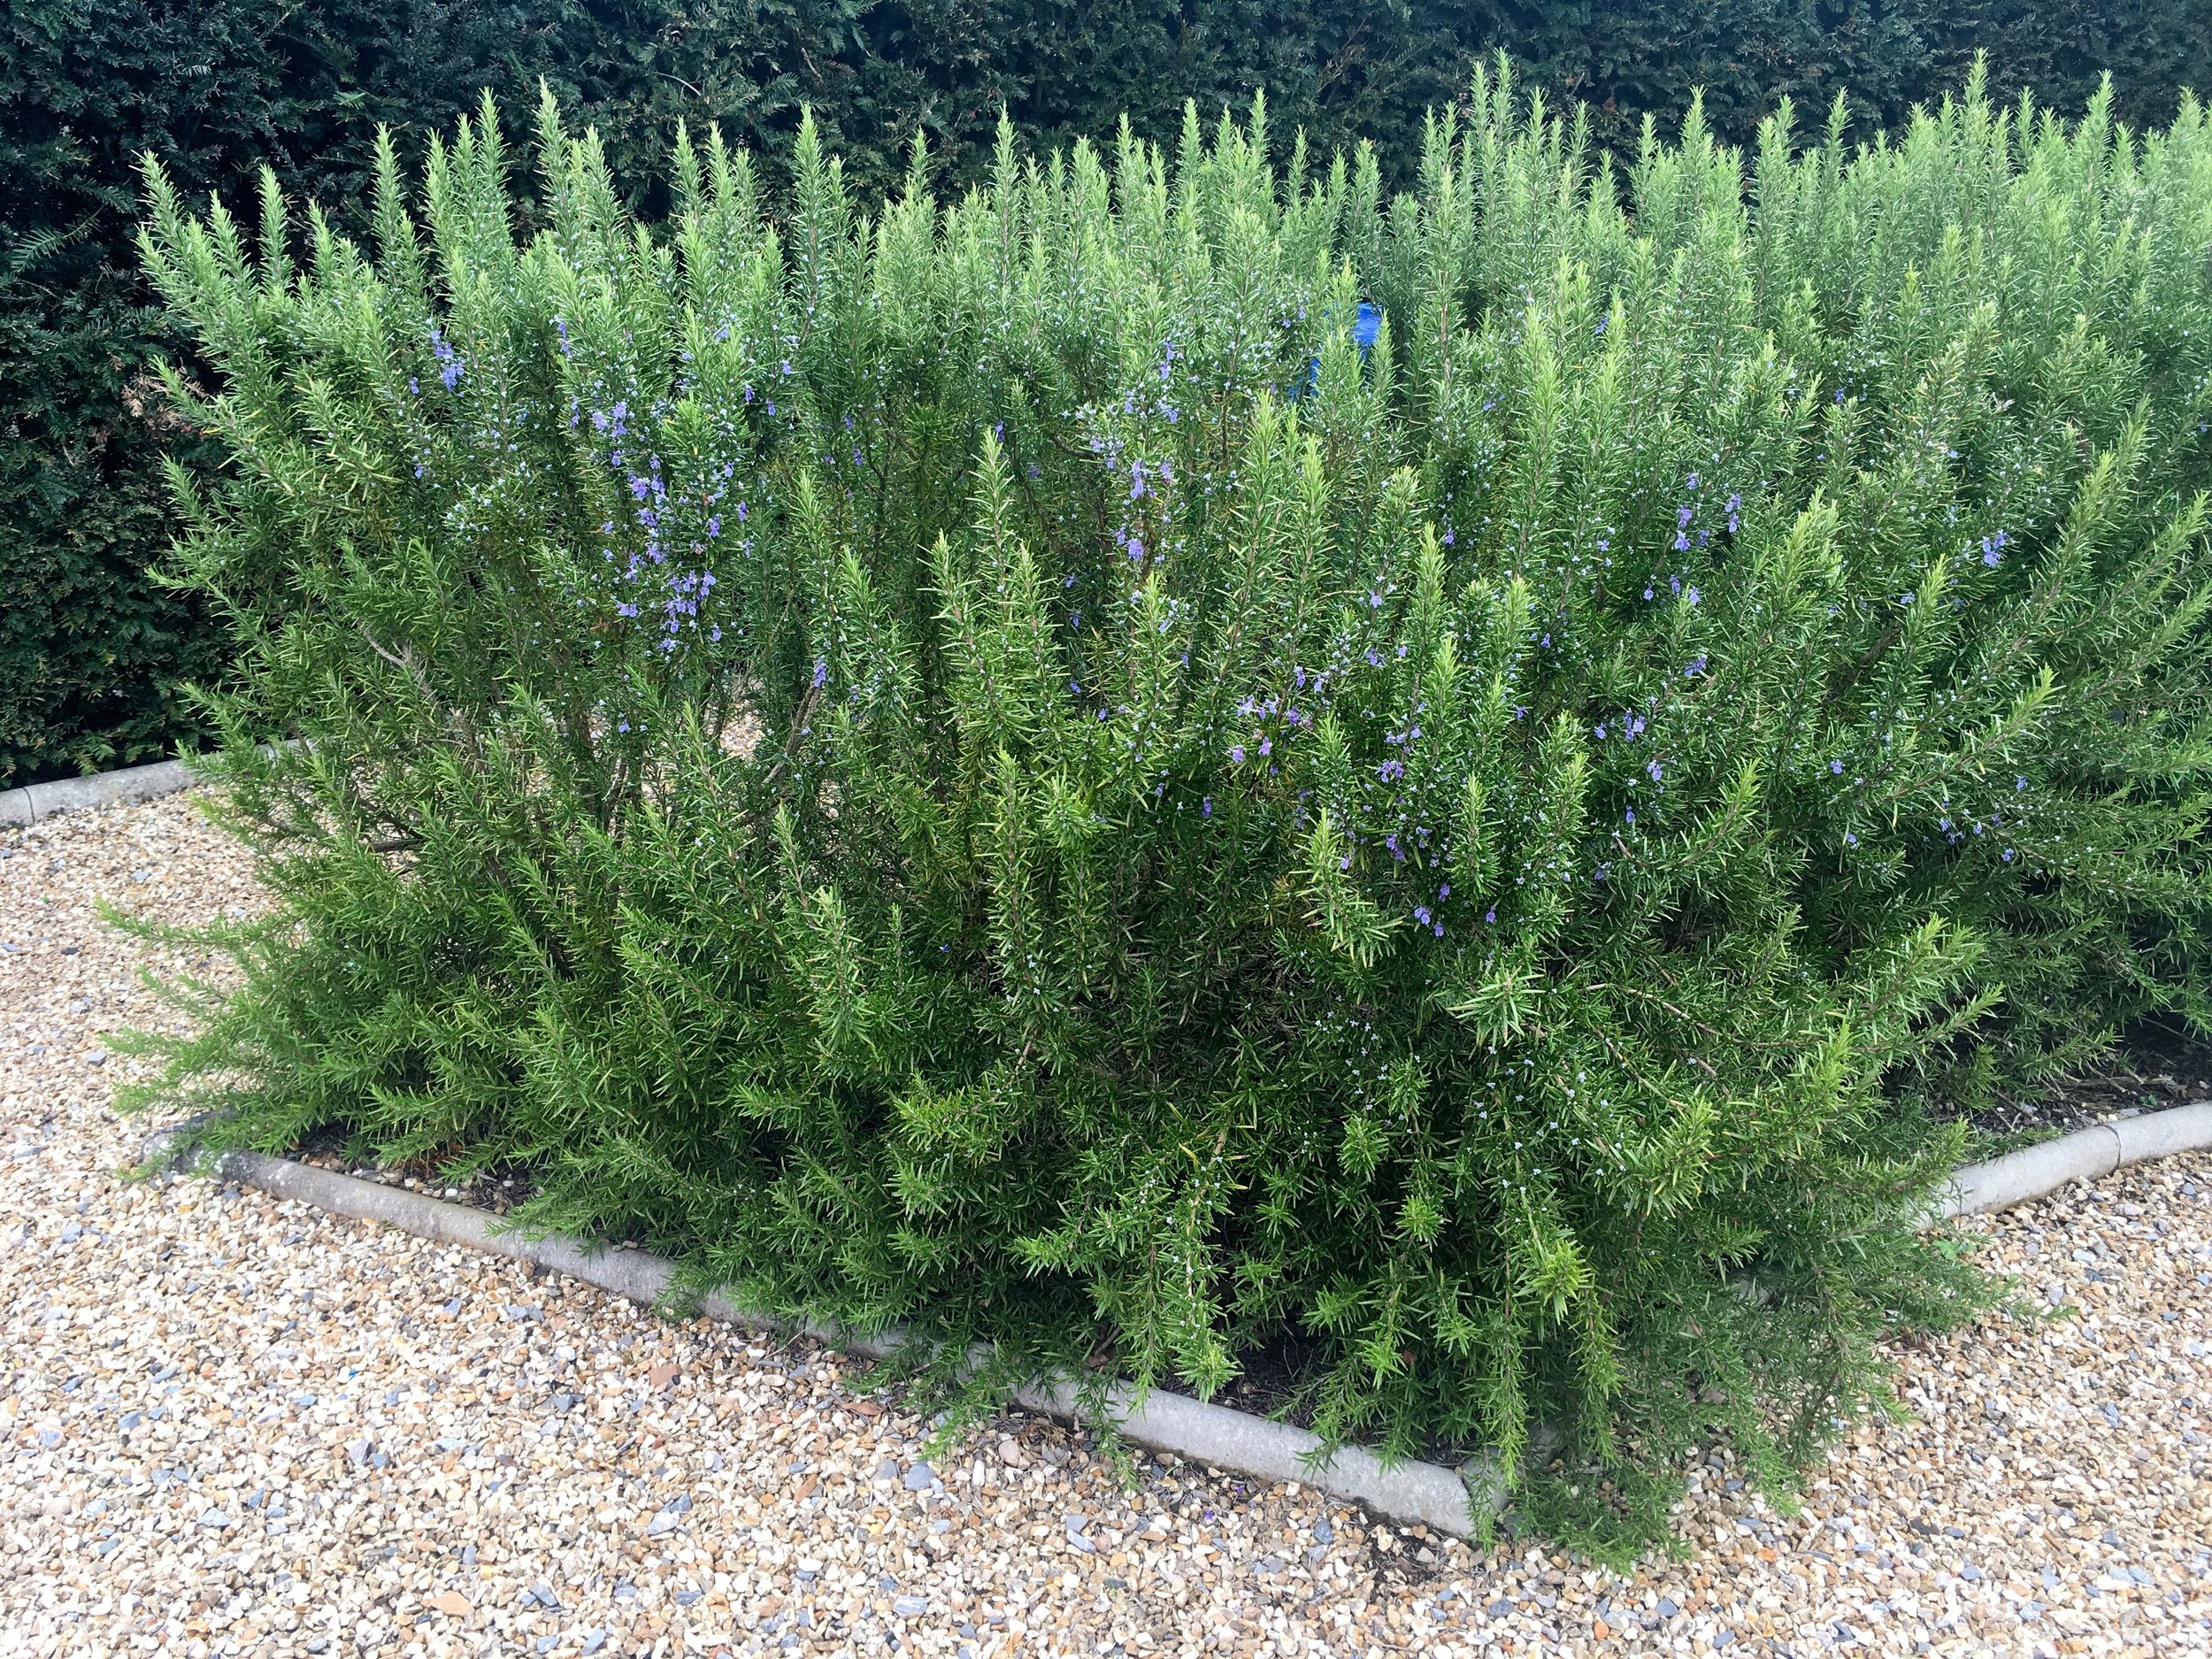 ROSEMARY USED IN SWATHES OF BEDS